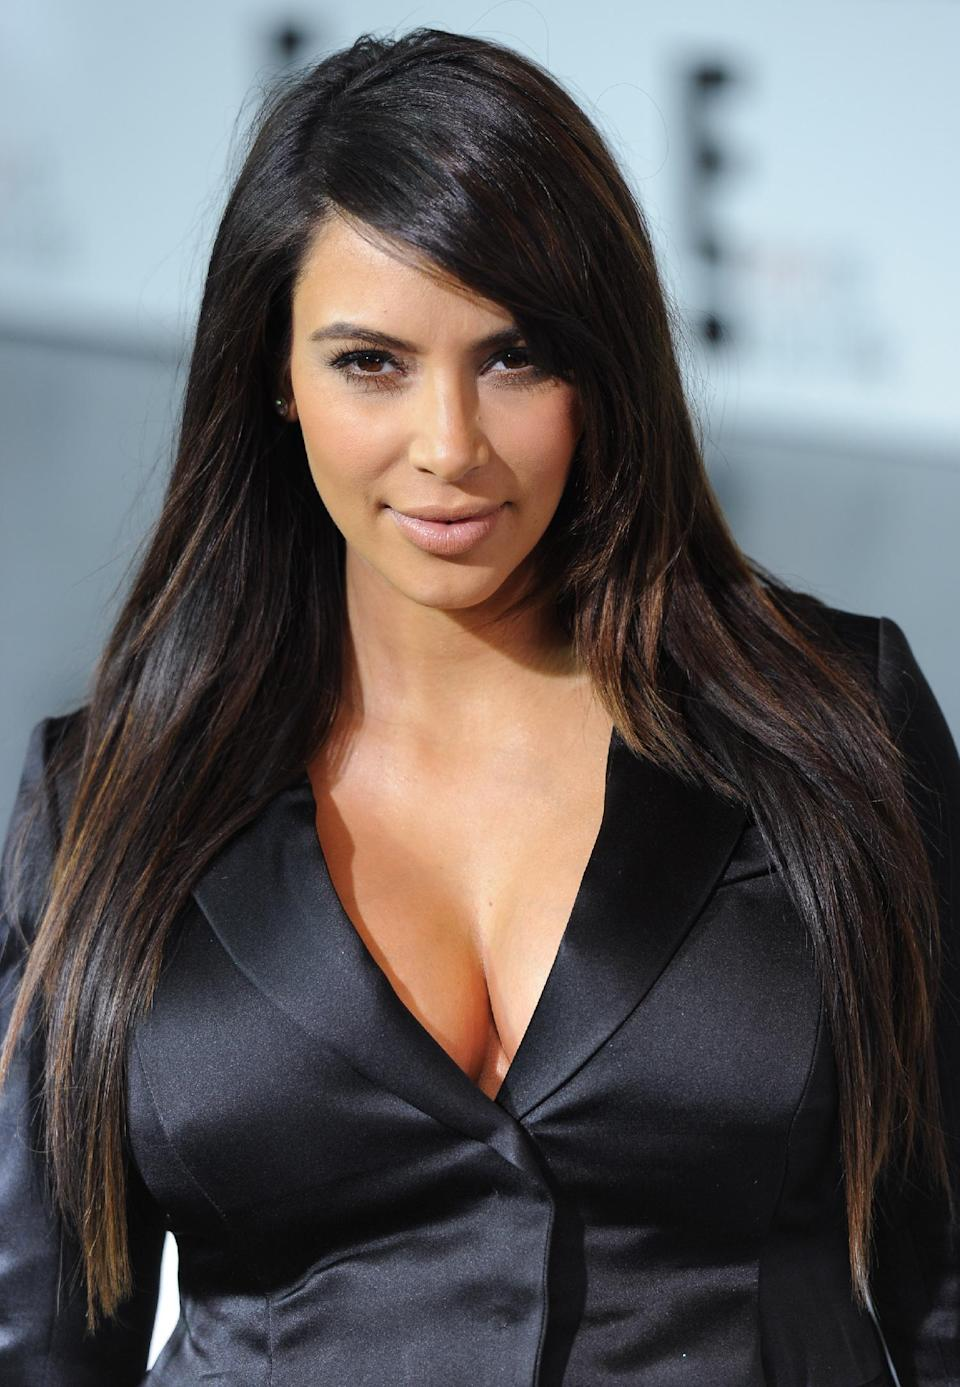 "Kim Kardashian from ""Keeping Up With The Kardashians"" attend the E! Network 2013 Upfront at the Manhattan Center on Monday April 22, 2013 in New York. (Photo by Evan Agostini/Invision/AP)"